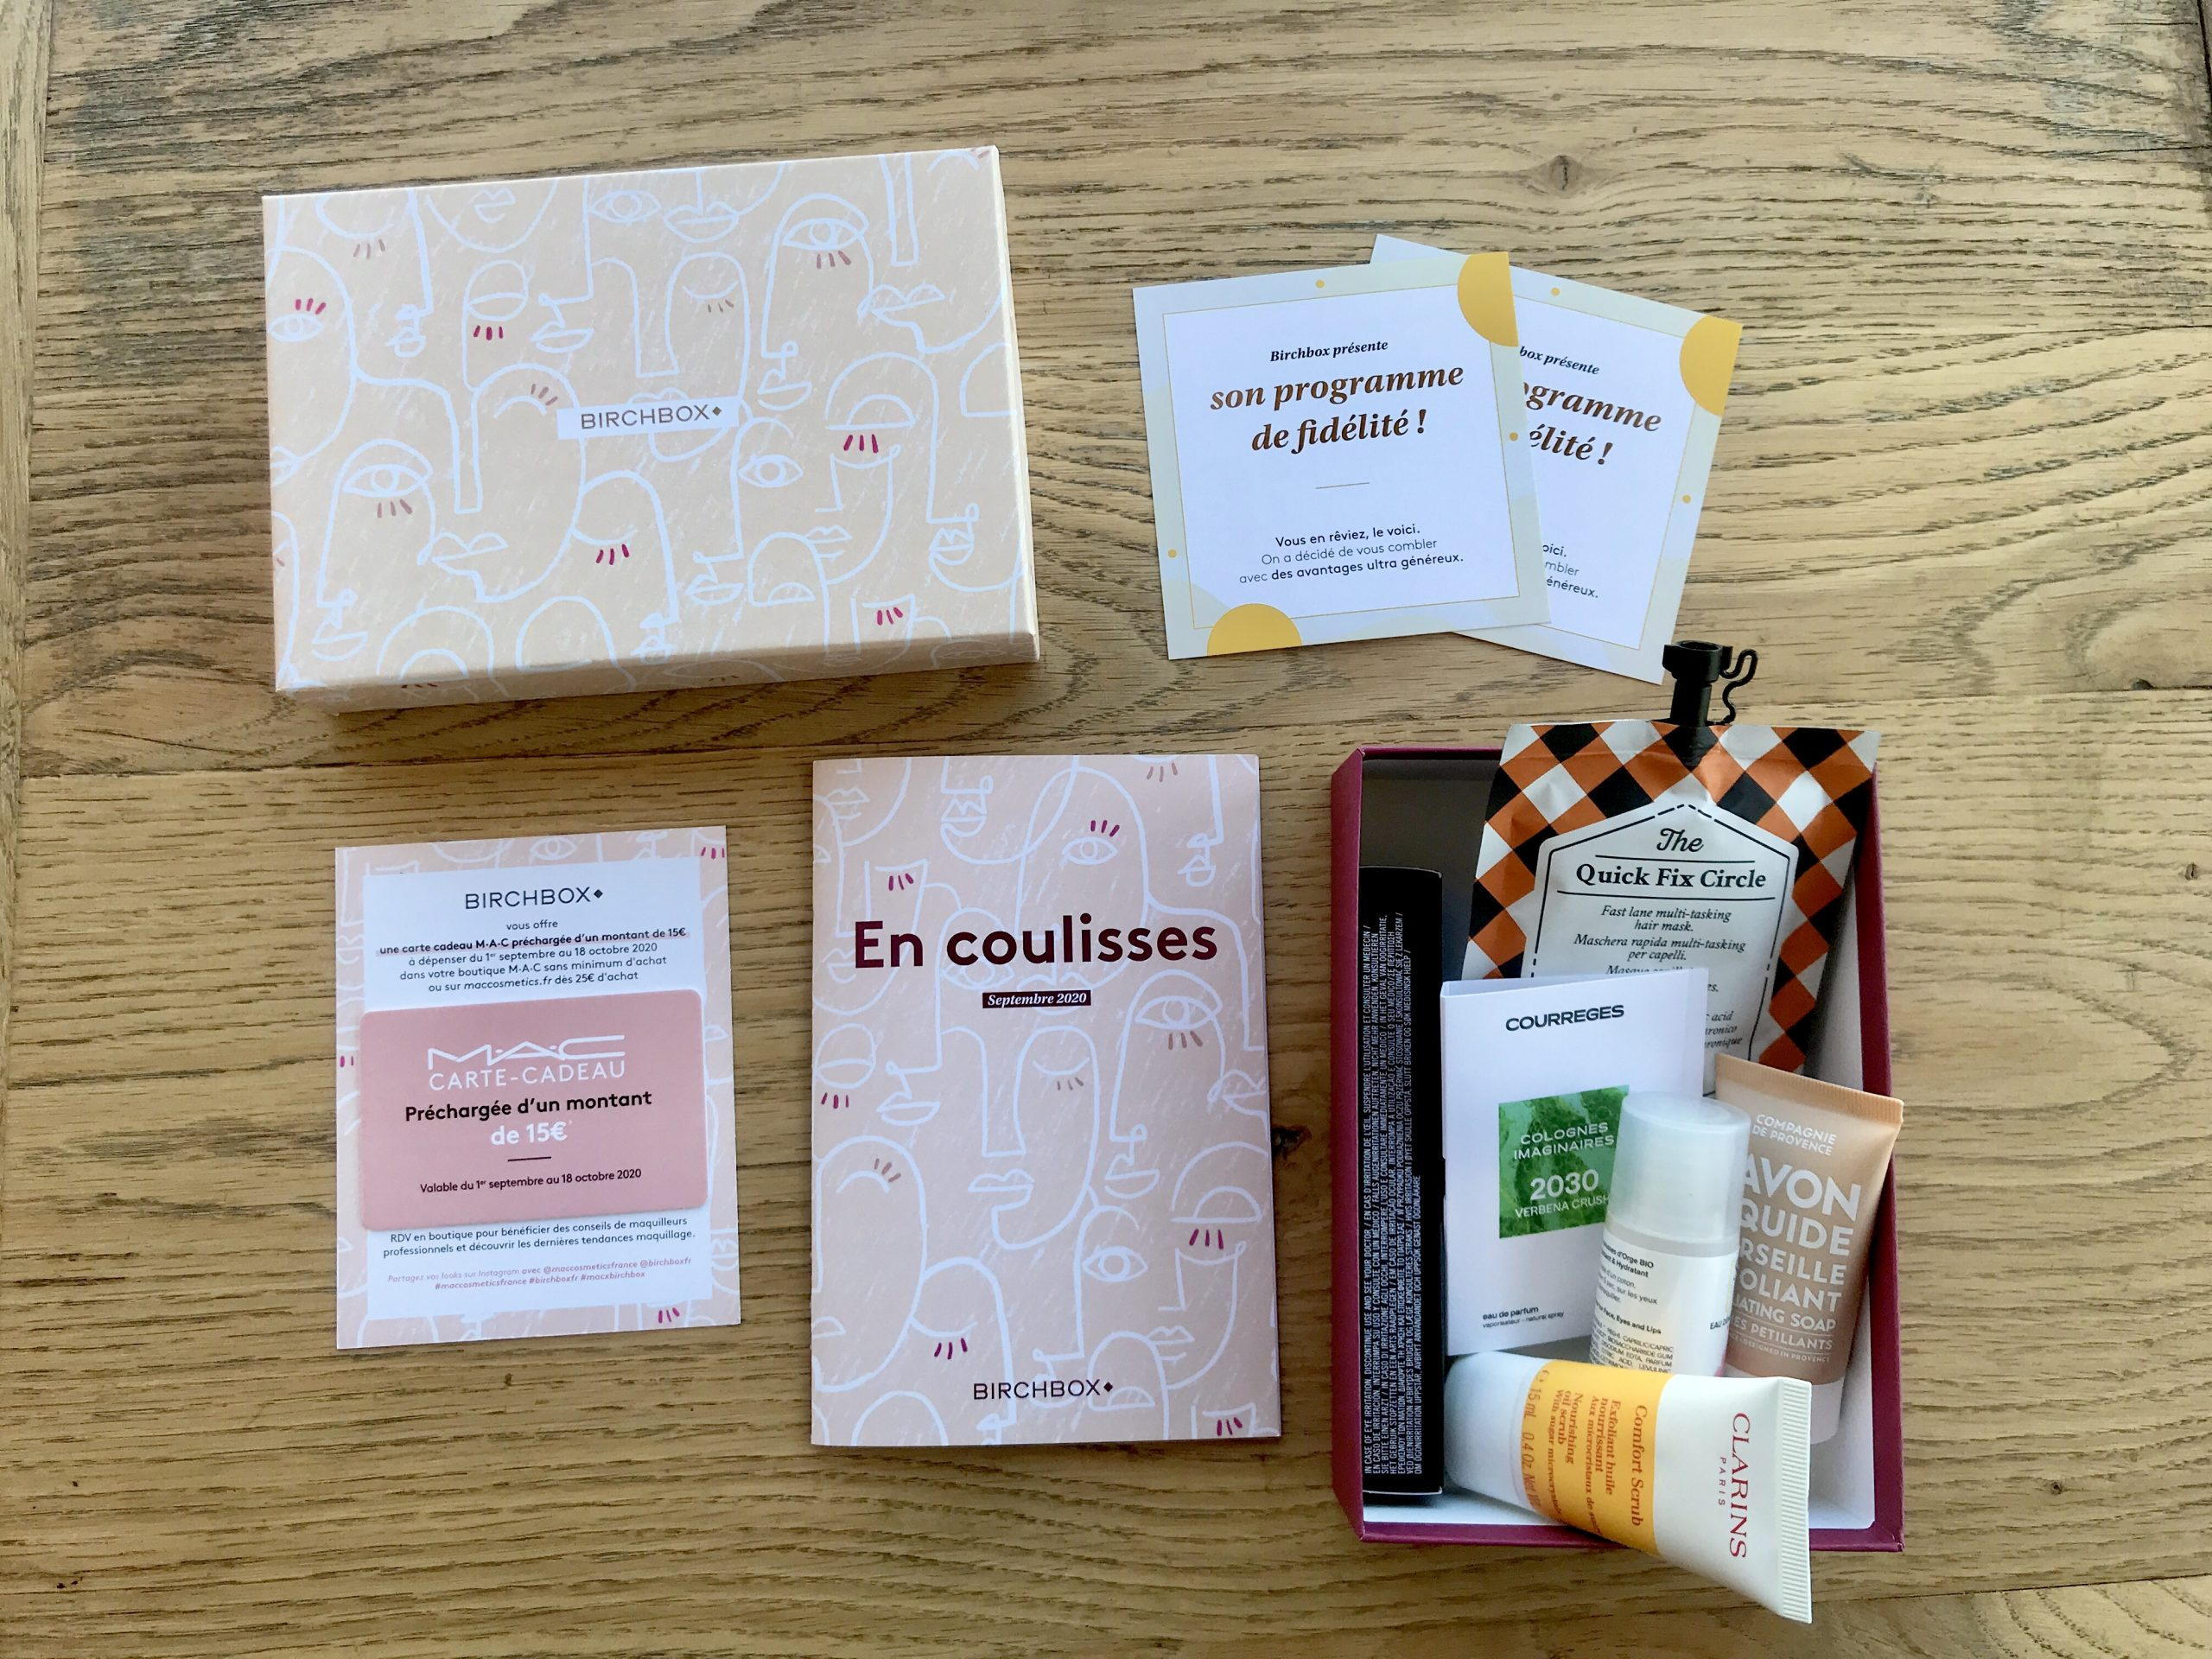 birchbox septembre 2020 en coulisses